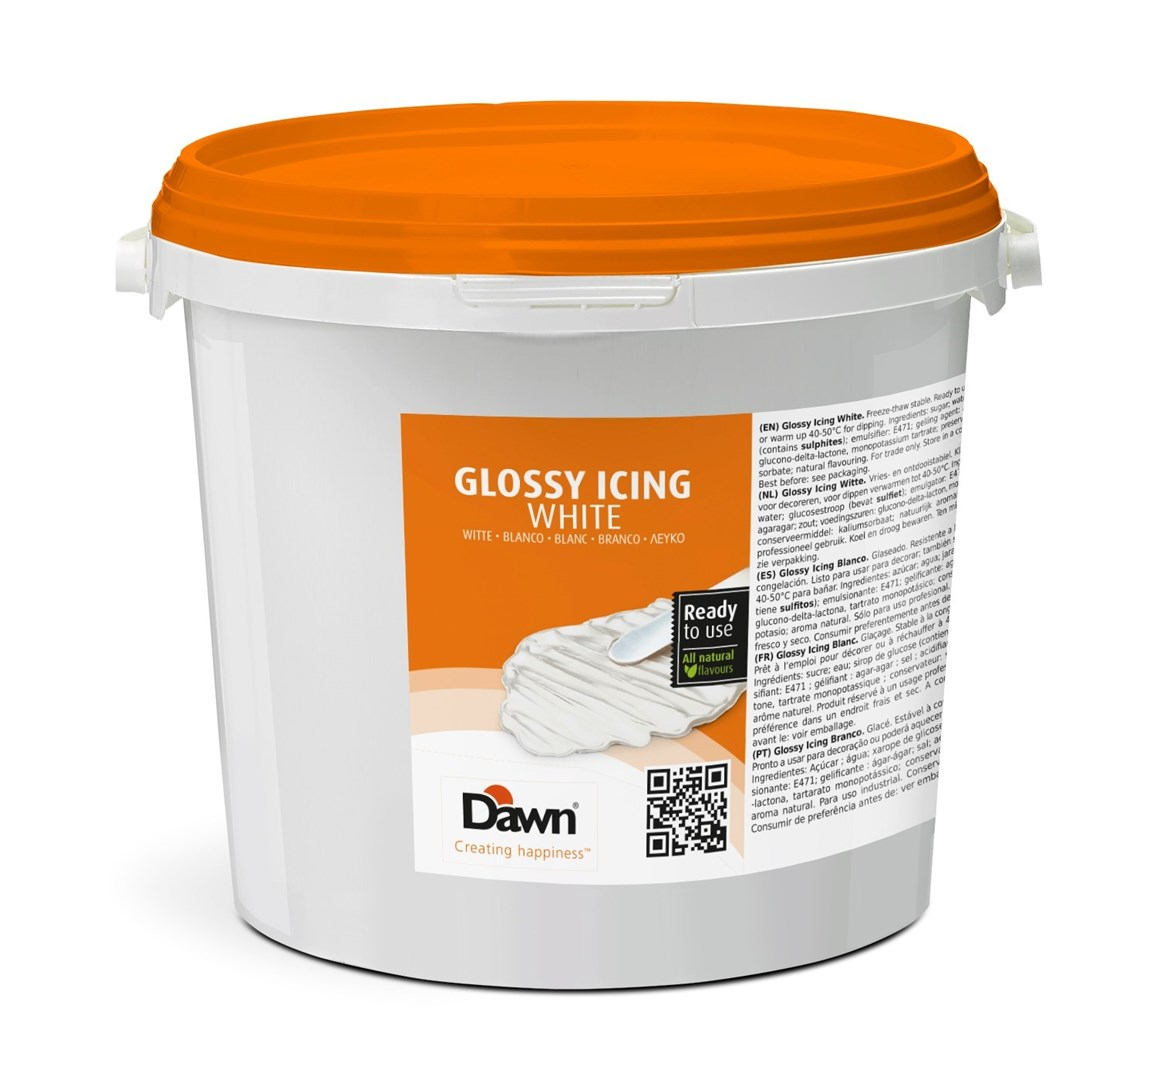 Productafbeelding Dawn Glossy Icing Wit 6 kg emmer